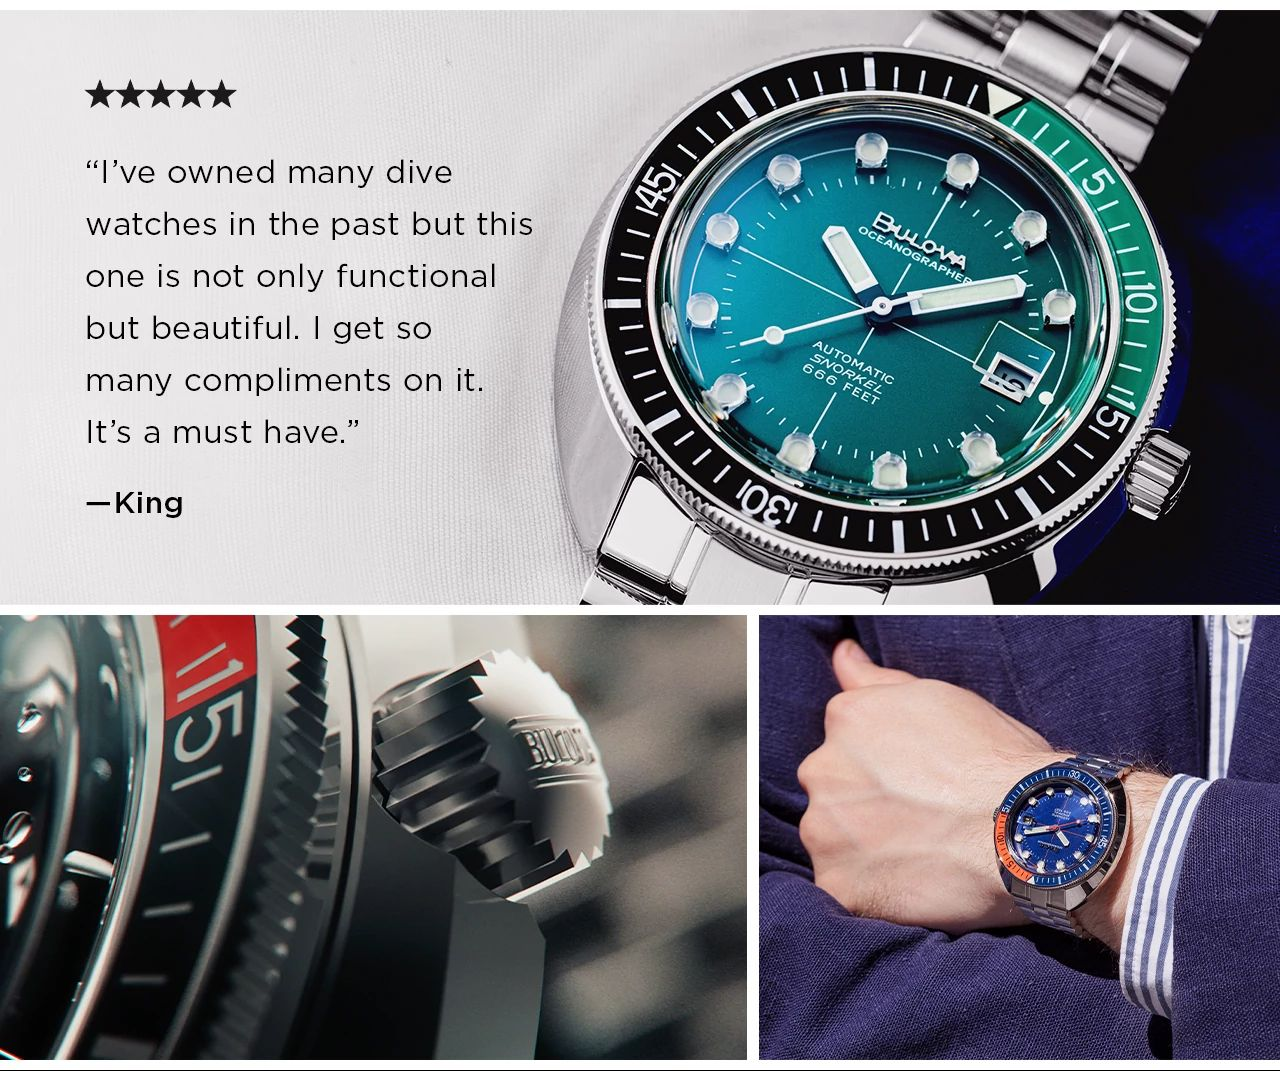 """""""I've owned many dive watches in the past but this one is not only functional but beautiful… I get so many compliments on it. It's a must have."""" -King"""